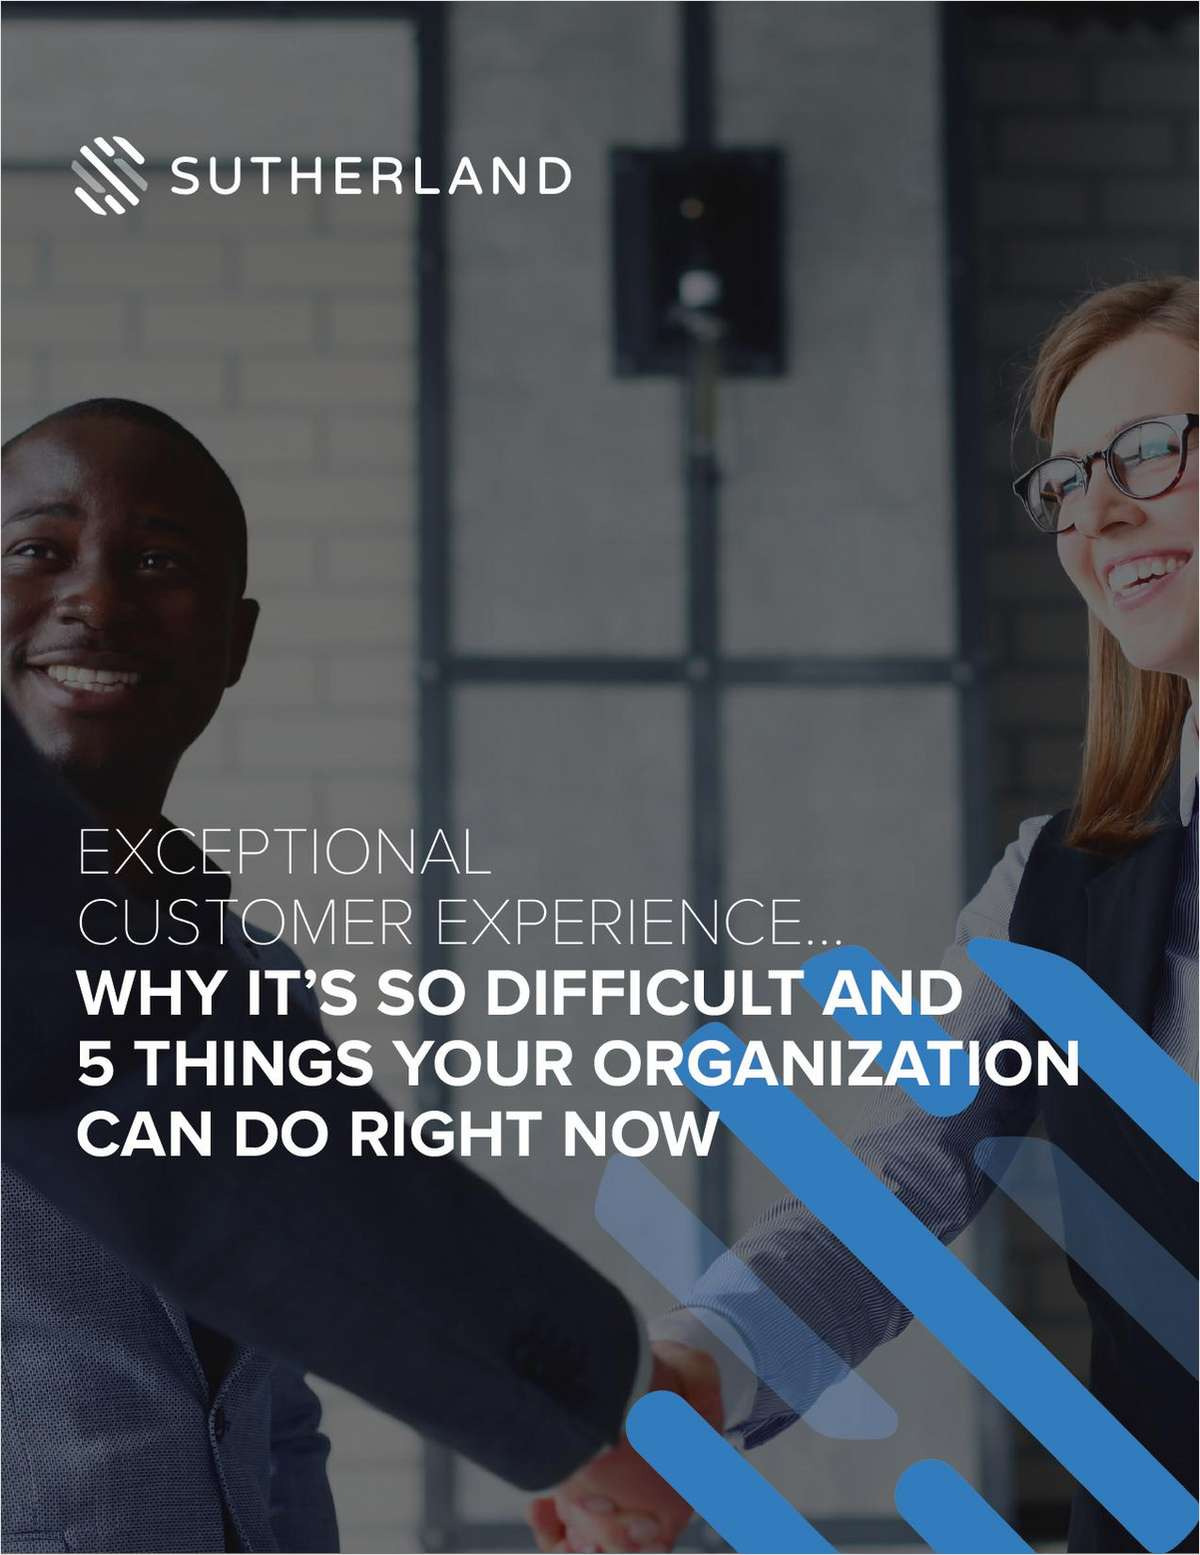 Exceptional Customer Experience… Why It's So Difficult and the 5 Things Your Organization Can Do Right Now